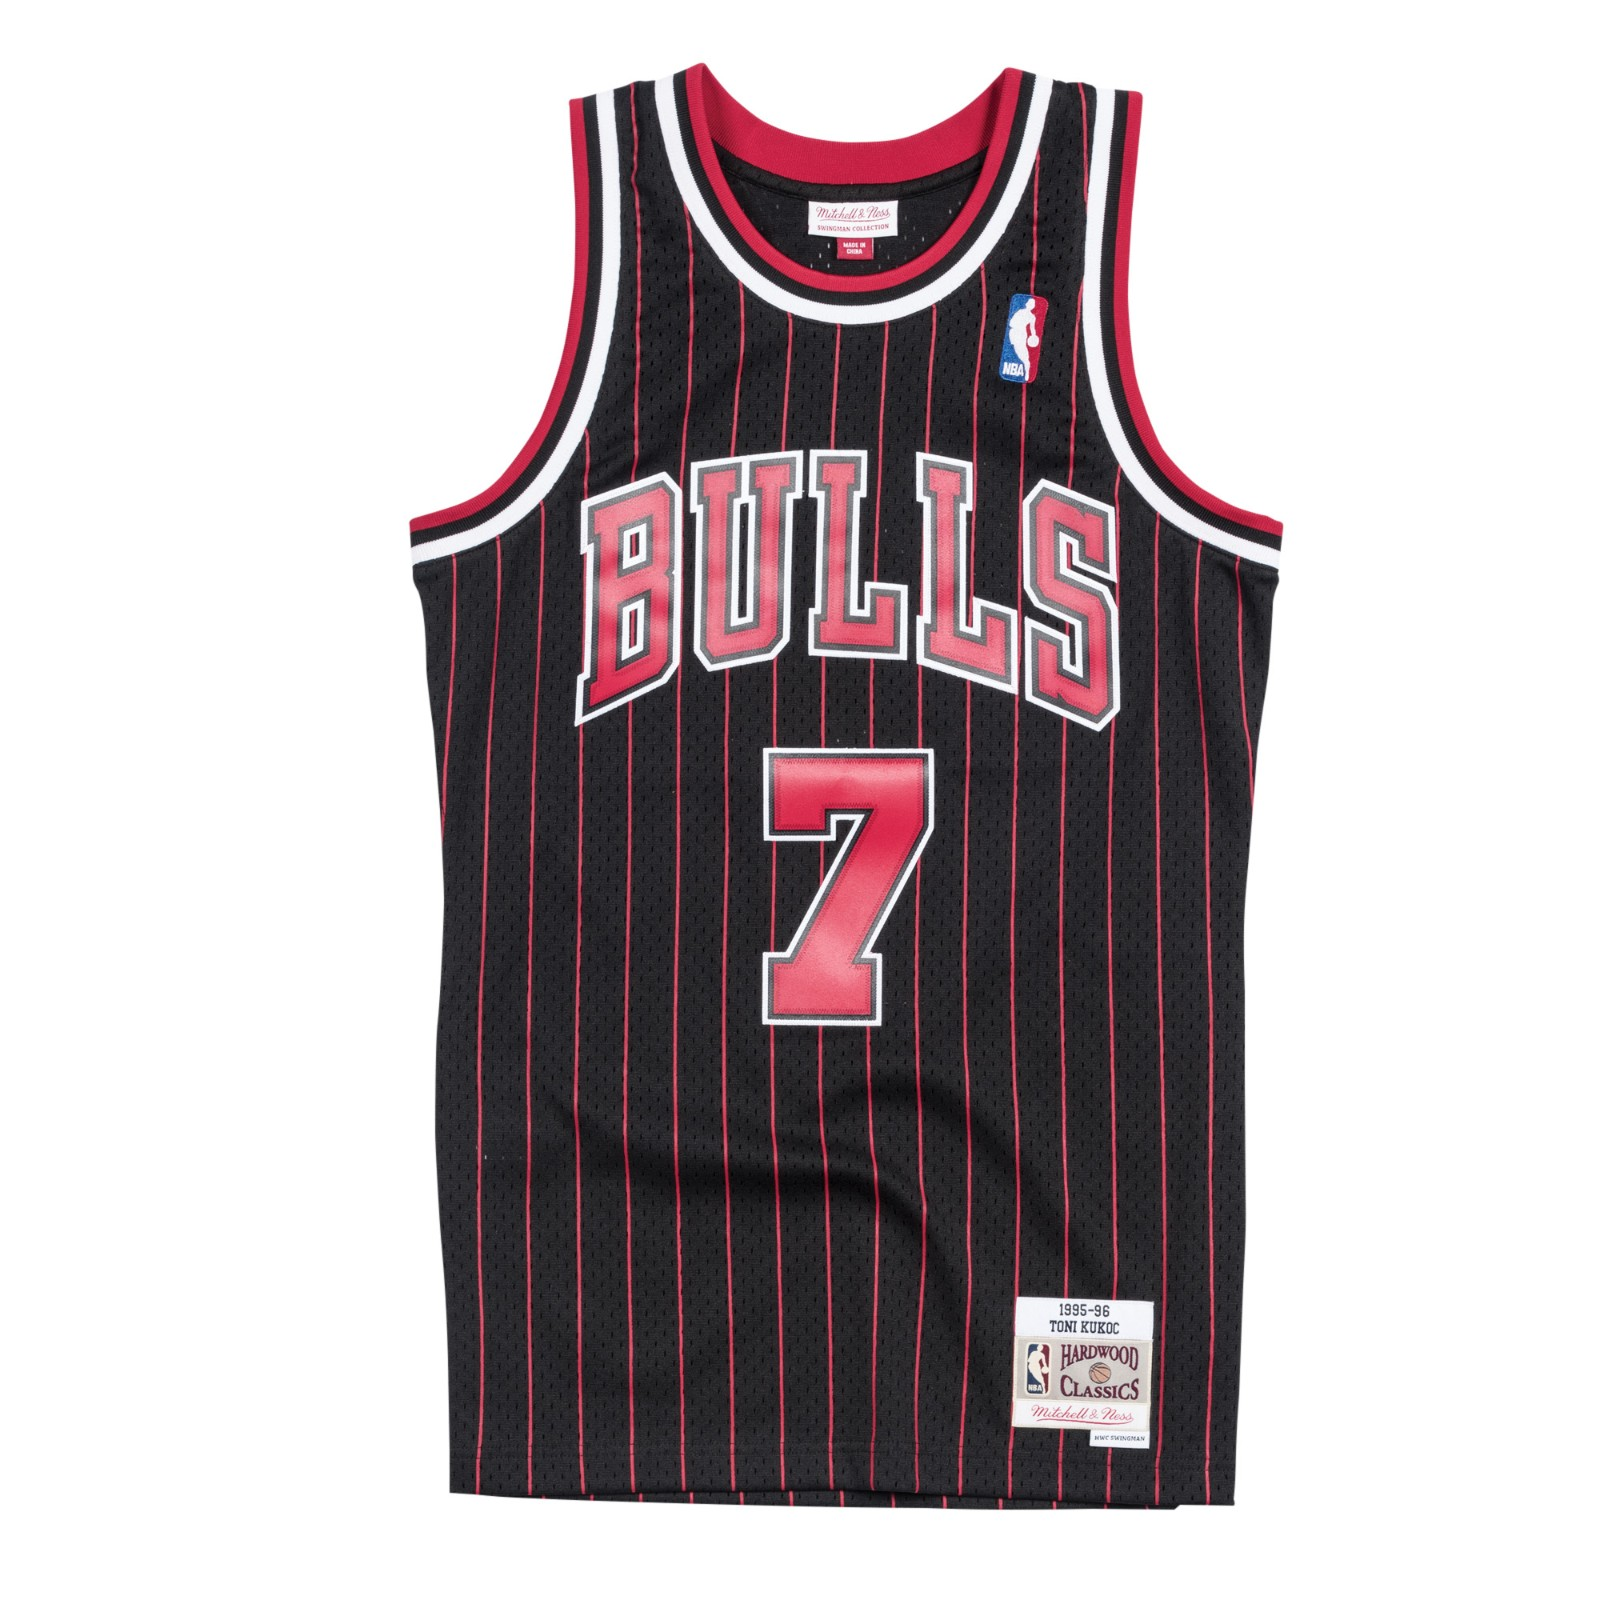 27d40199a961 Details about Toni Kukoc 1995-96 Chicago Bulls Alternate Mitchell   Ness  Swingman Jersey Men s